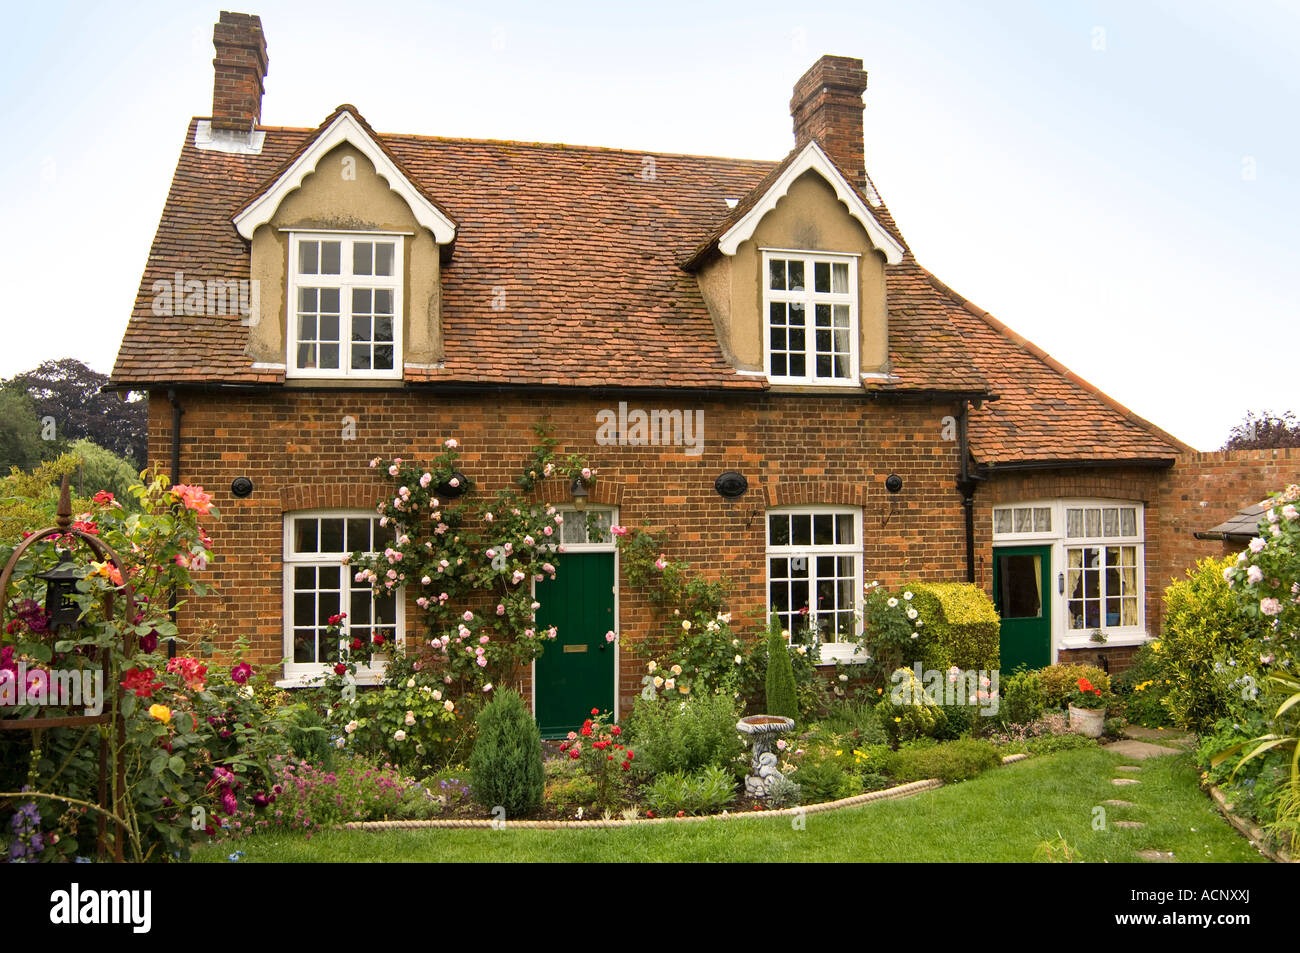 English Country Cottage 2 - Stock Image